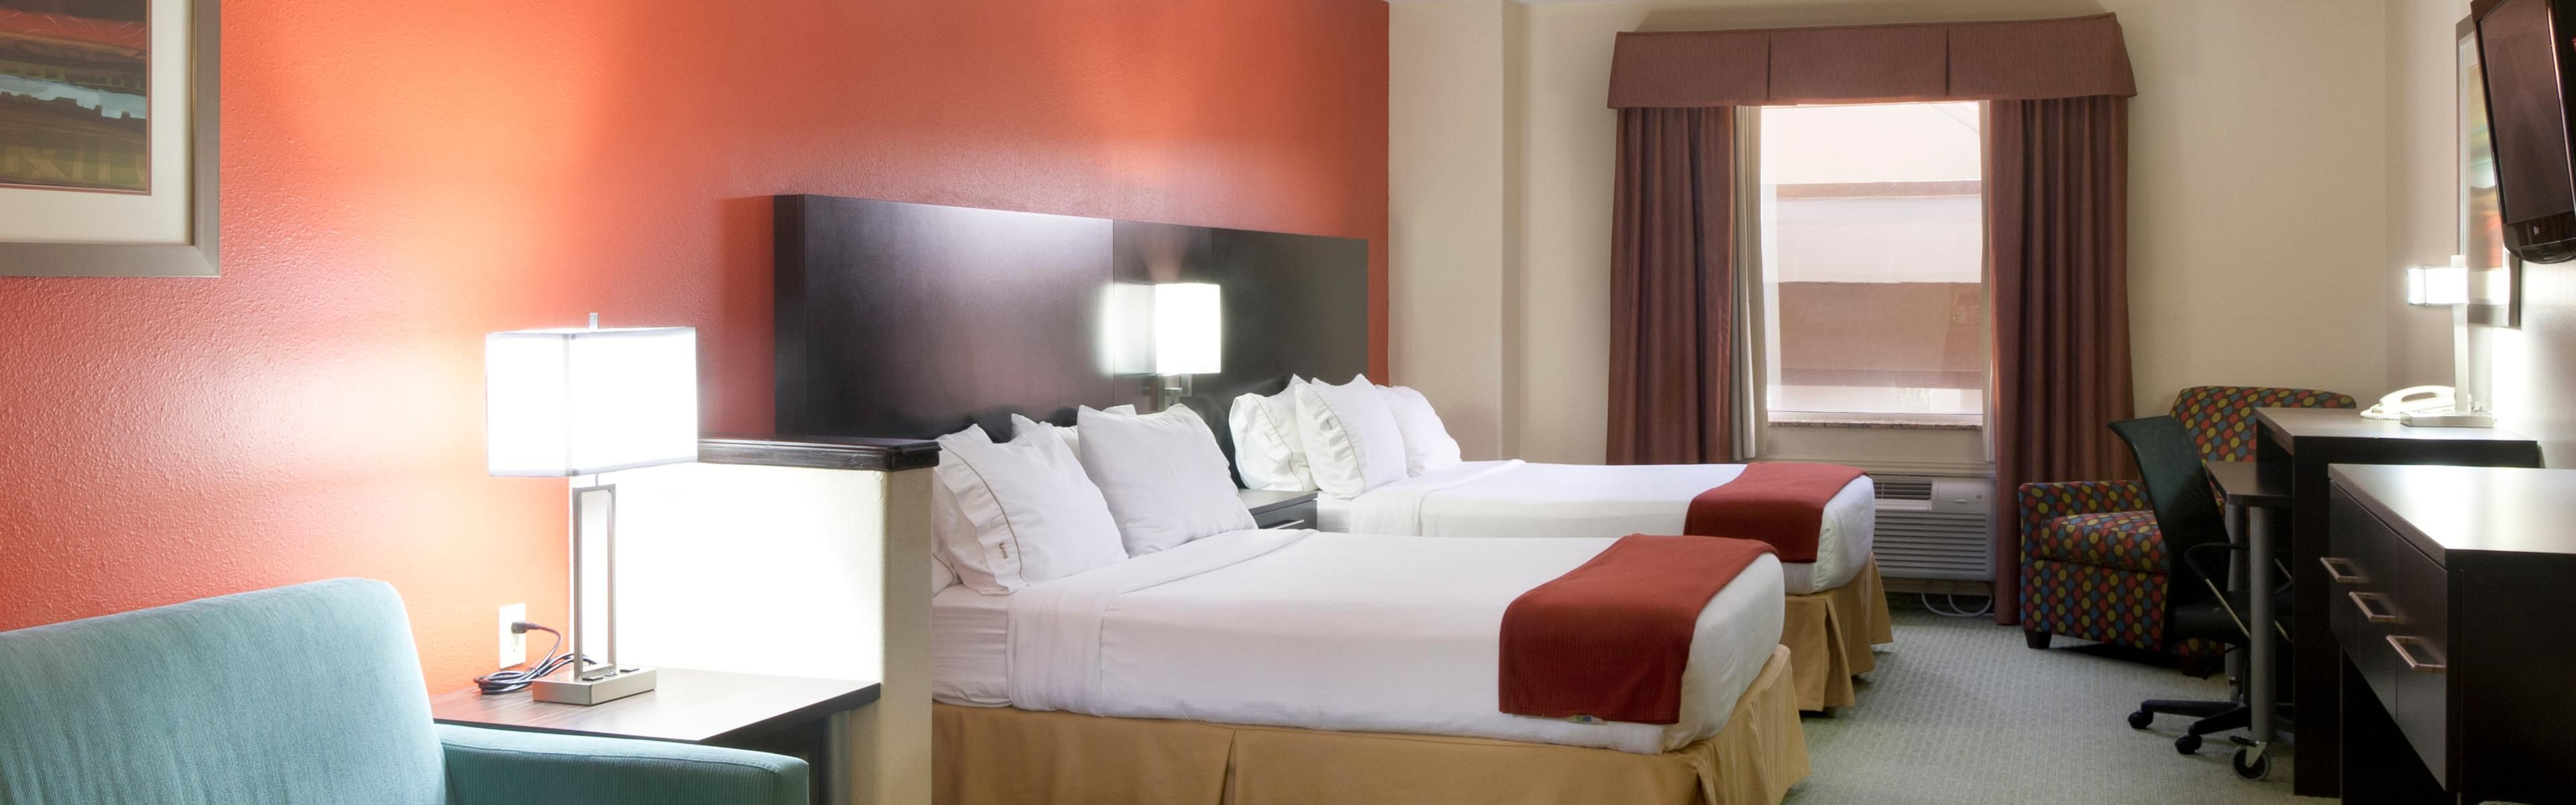 Holiday Inn Express & Suites Brownsville image 1